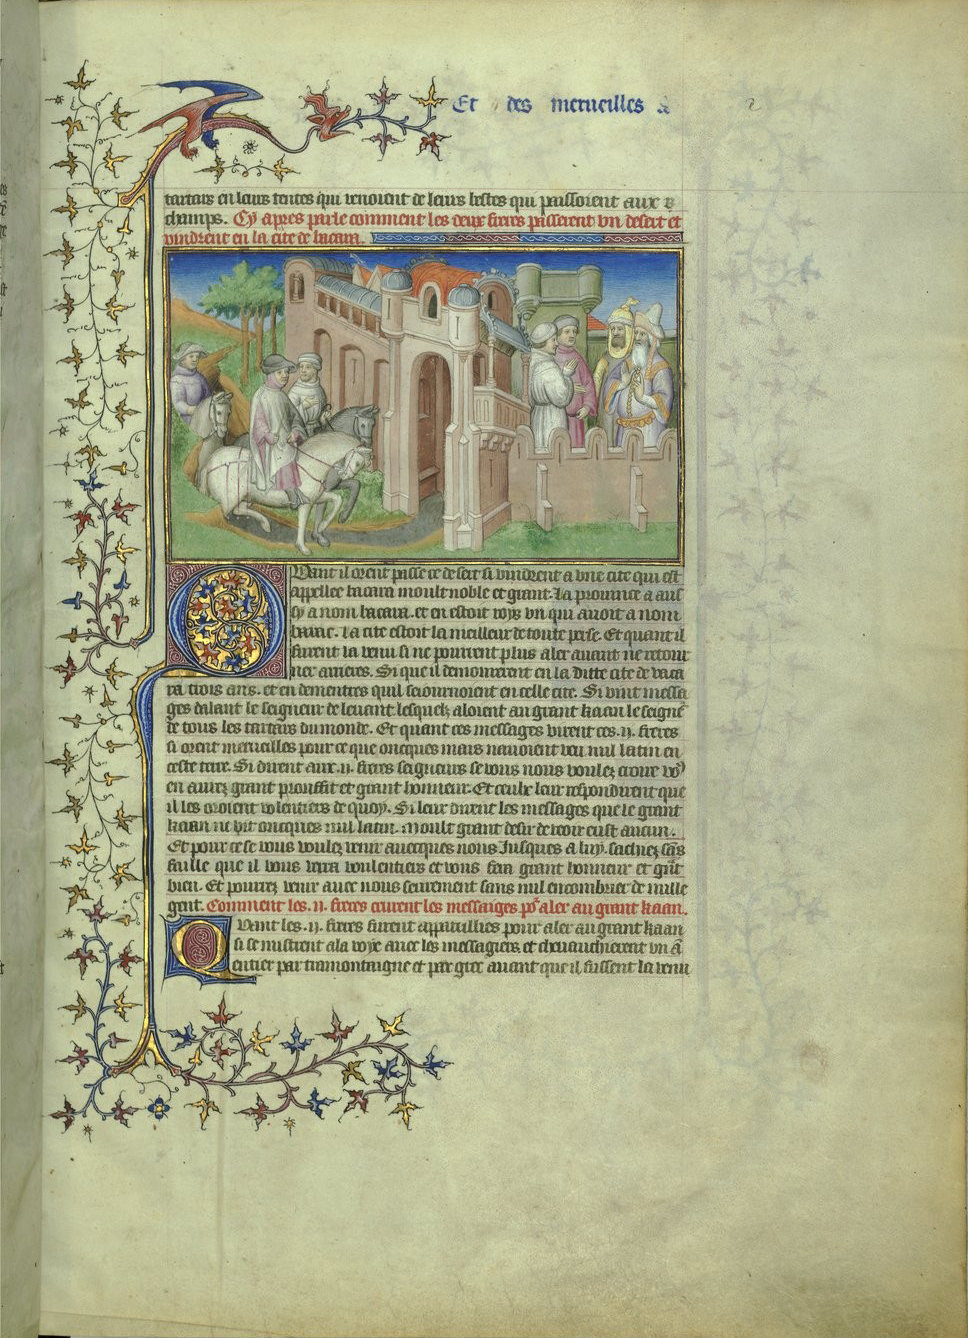 Anthology of travel literature and texts on the Orient f11, Paris, 15th century (1410-1412 ; c. 1470 for the miniature on f. 42v), Bibliothèque nationale de France, Manuscrits, Français 2810 Parchment, 299 ff., 420 x 298 mm., In Copyright